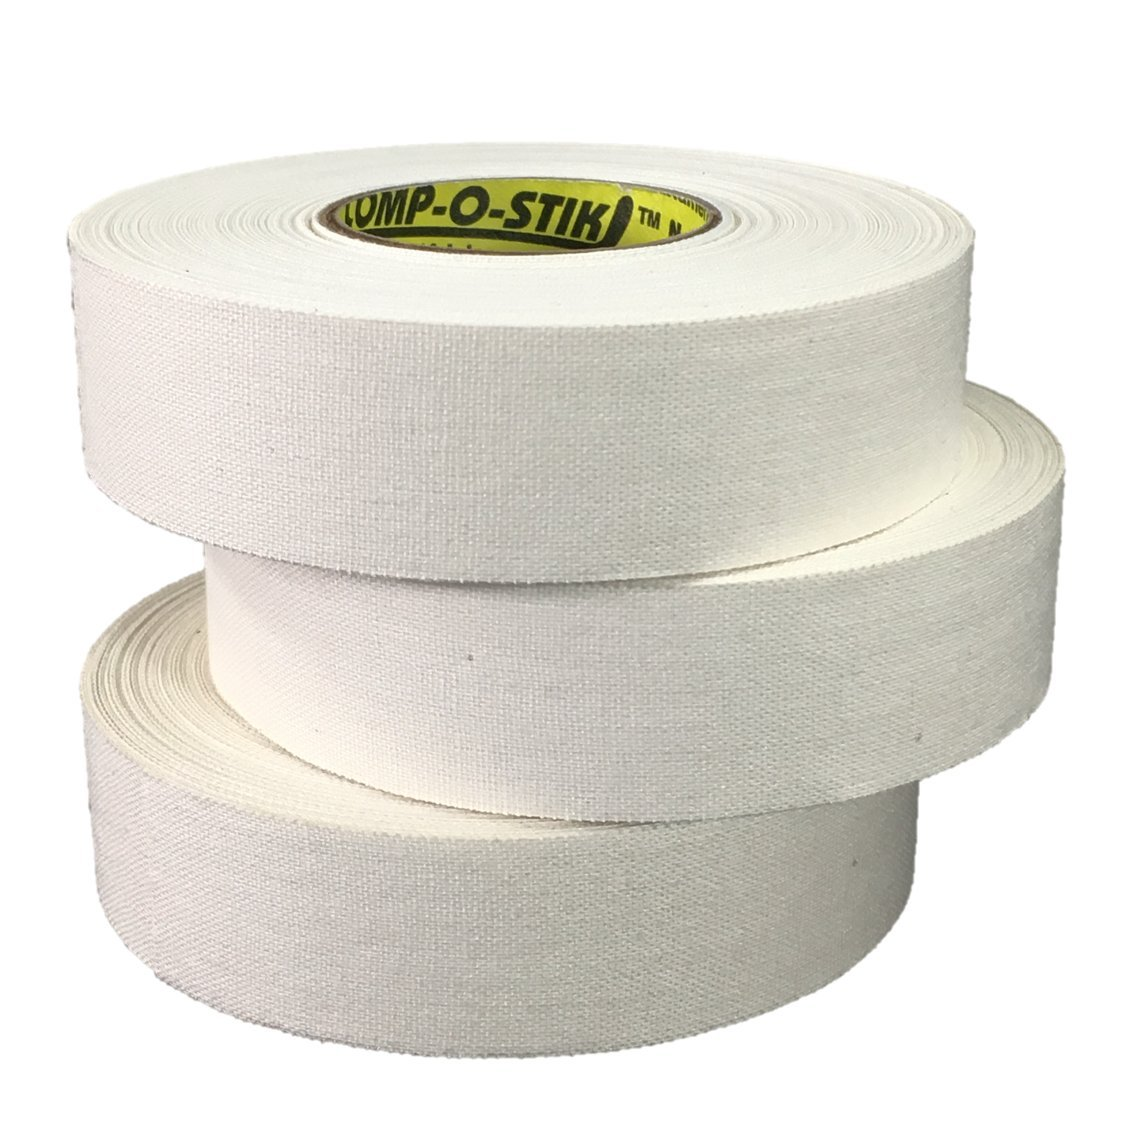 3 Rolls of Comp-O-Stik WHITE Hockey Lacrosse Bat Cloth Stick Tape ATHLETIC TAPE (3 Pack) Made In The U.S.A. 1'' X 25 yds